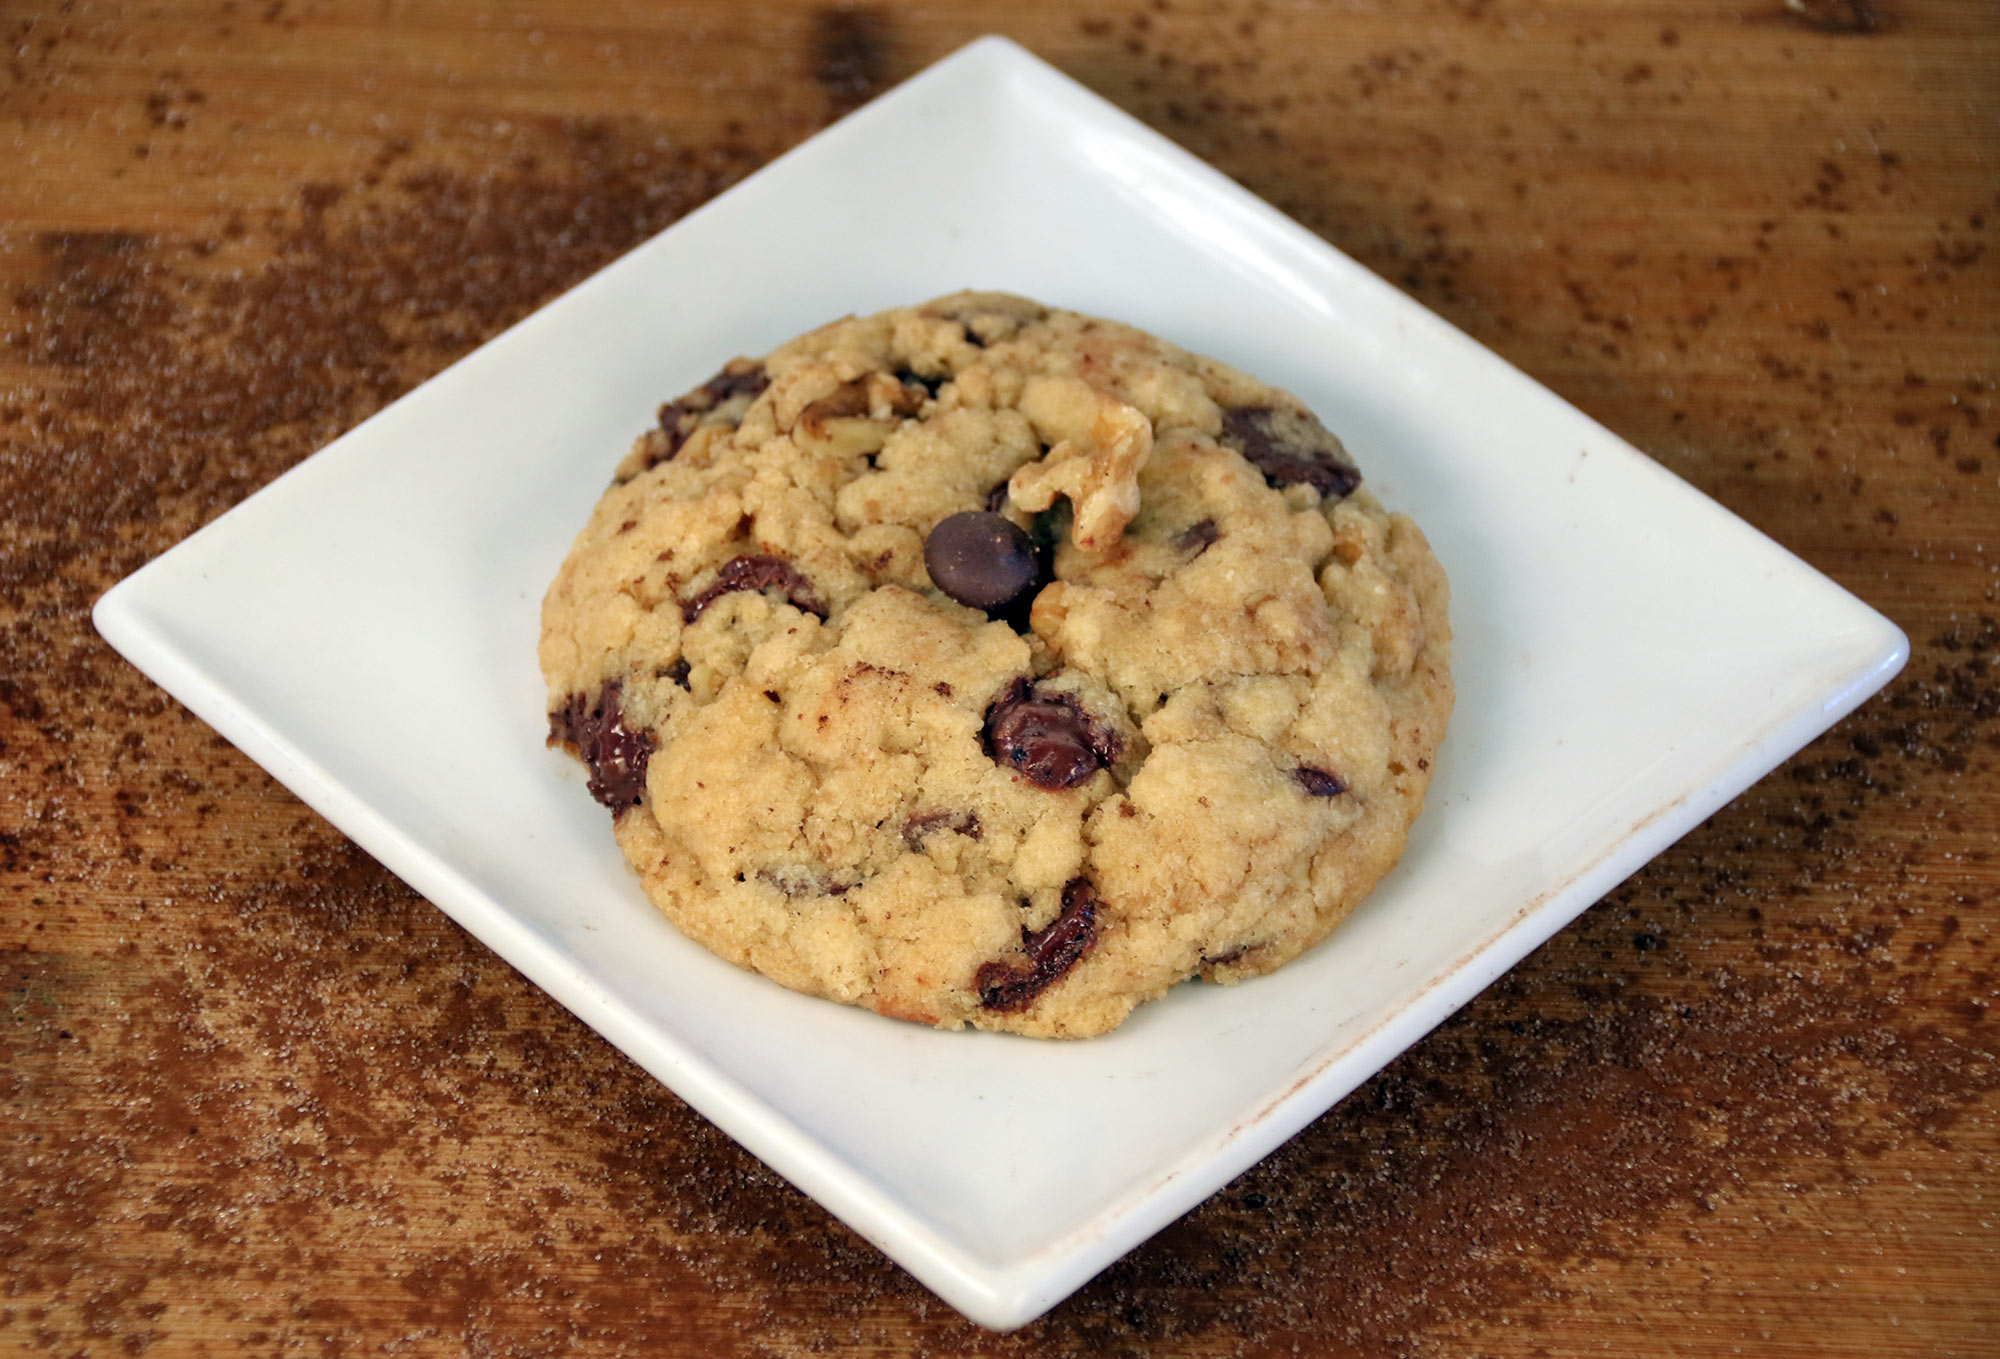 Choc chip & walnut cookie